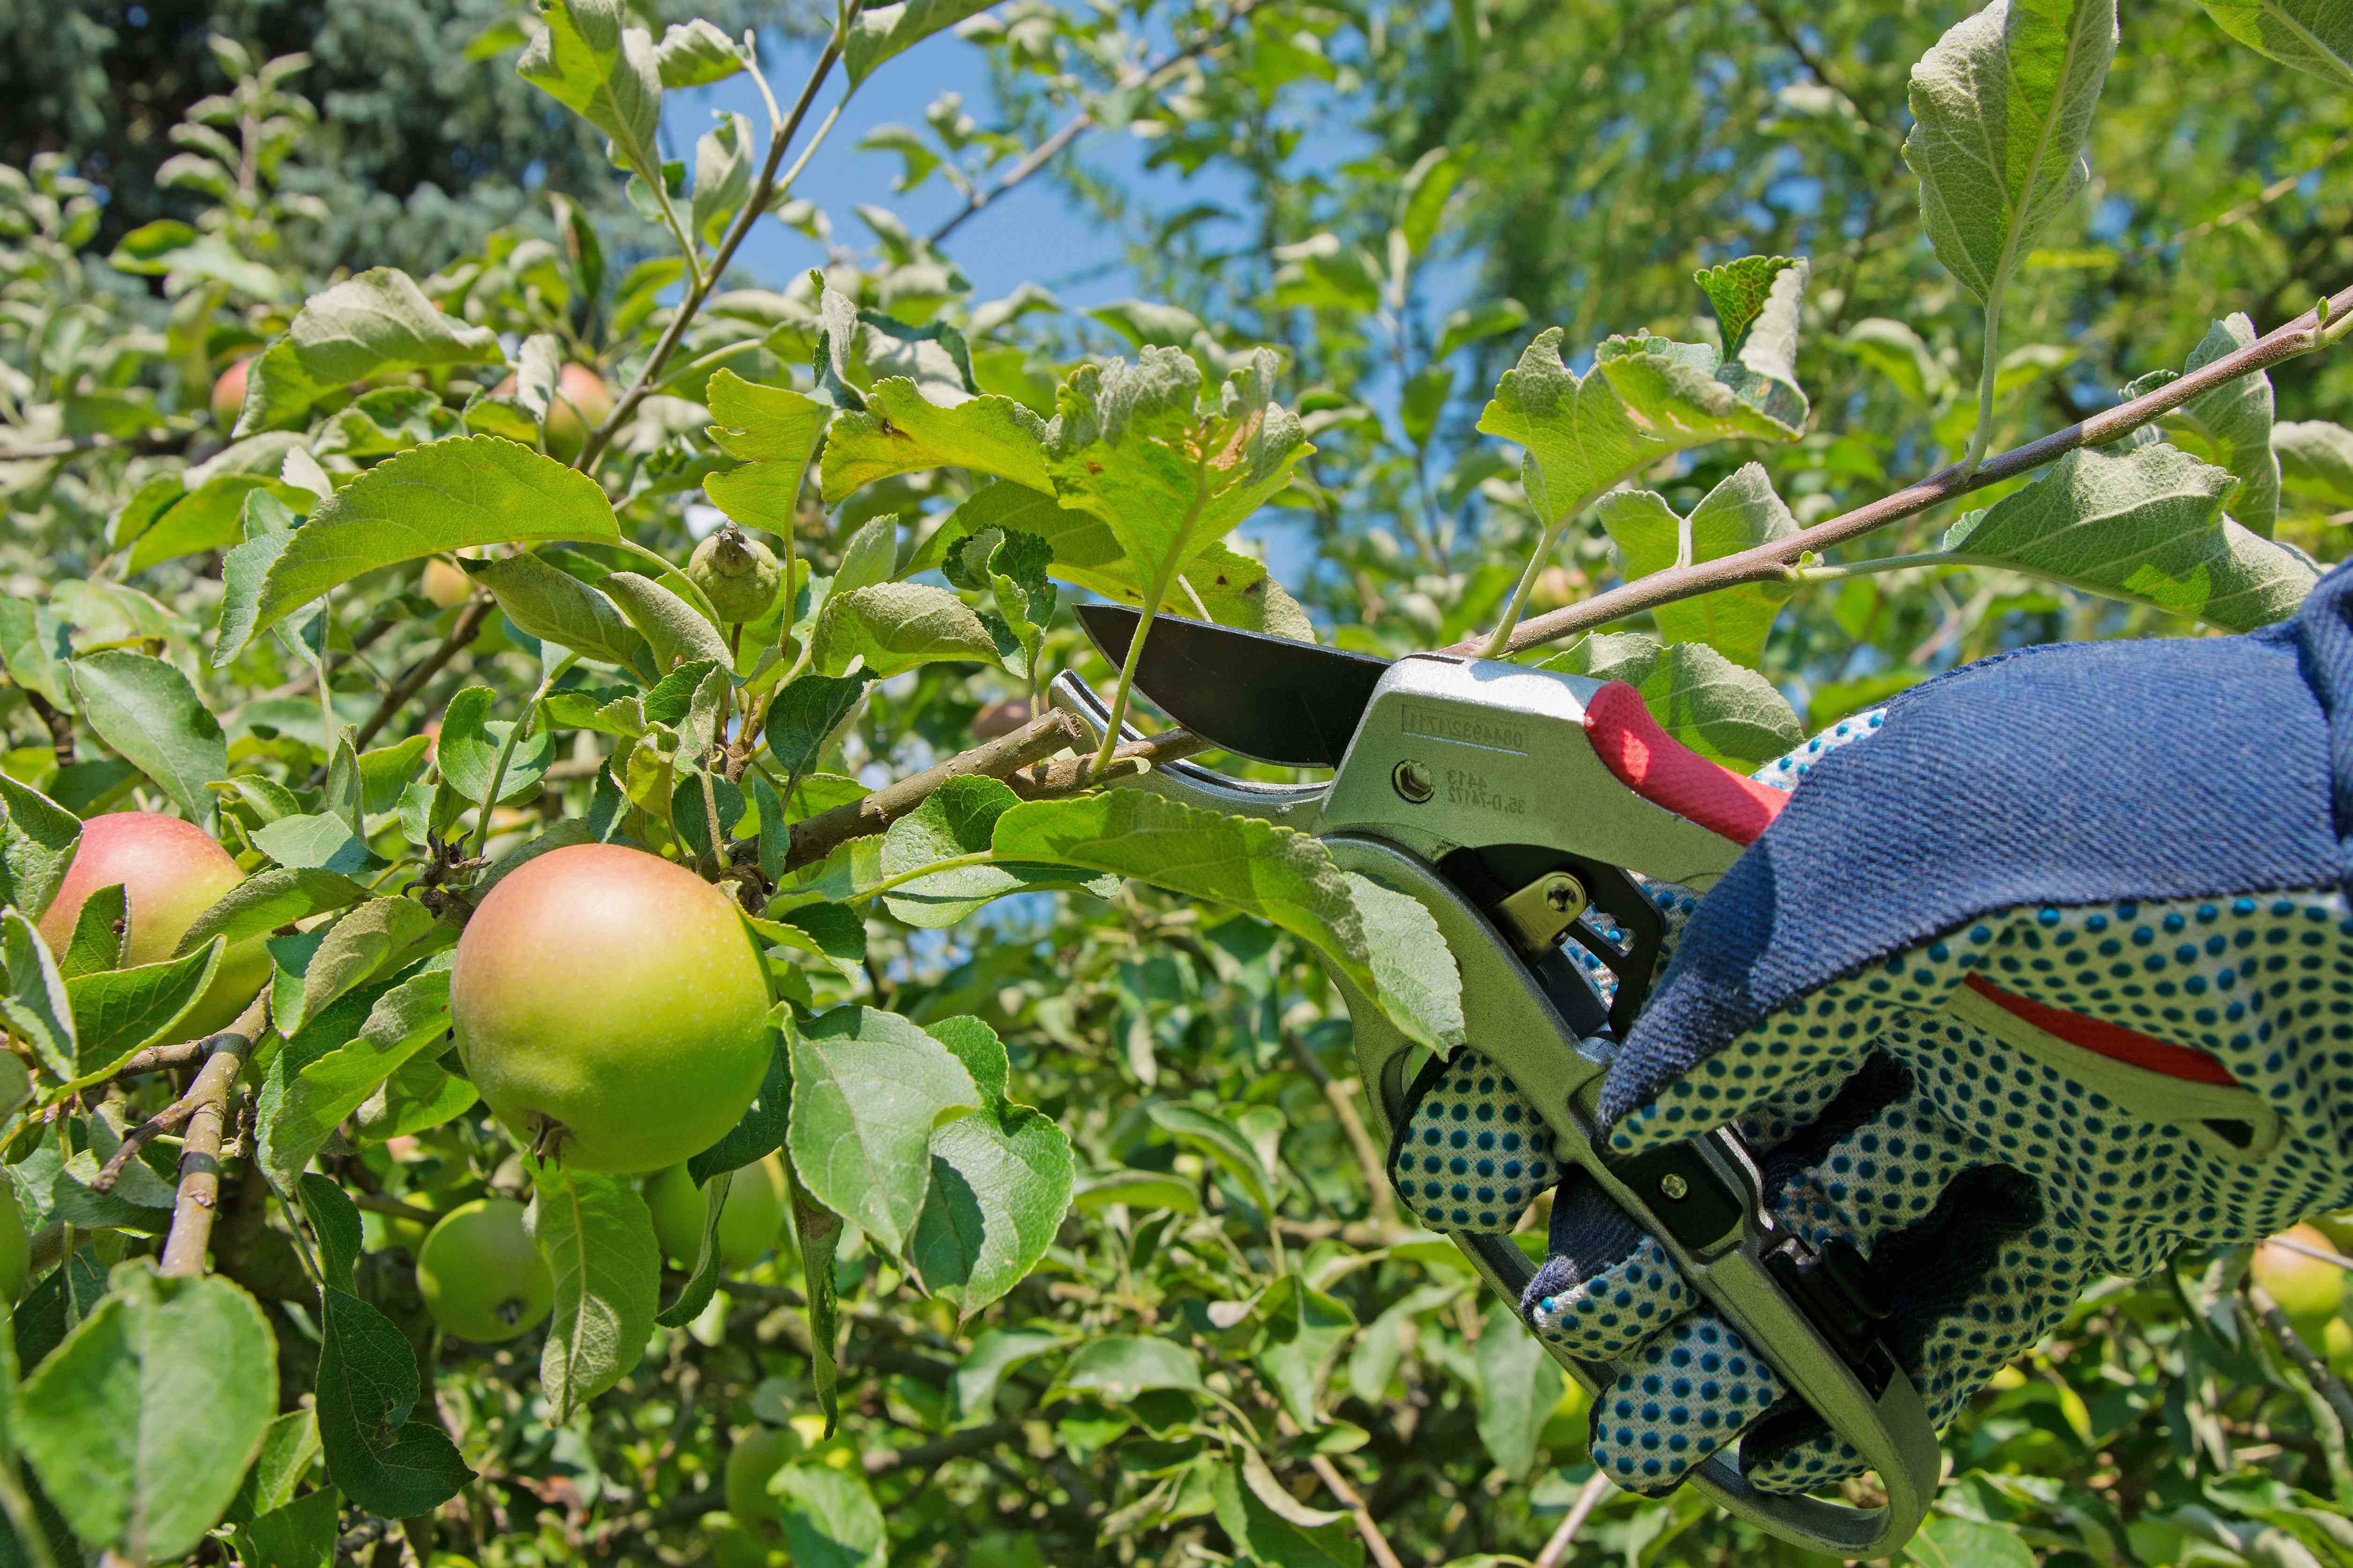 How to prune a fruit tree